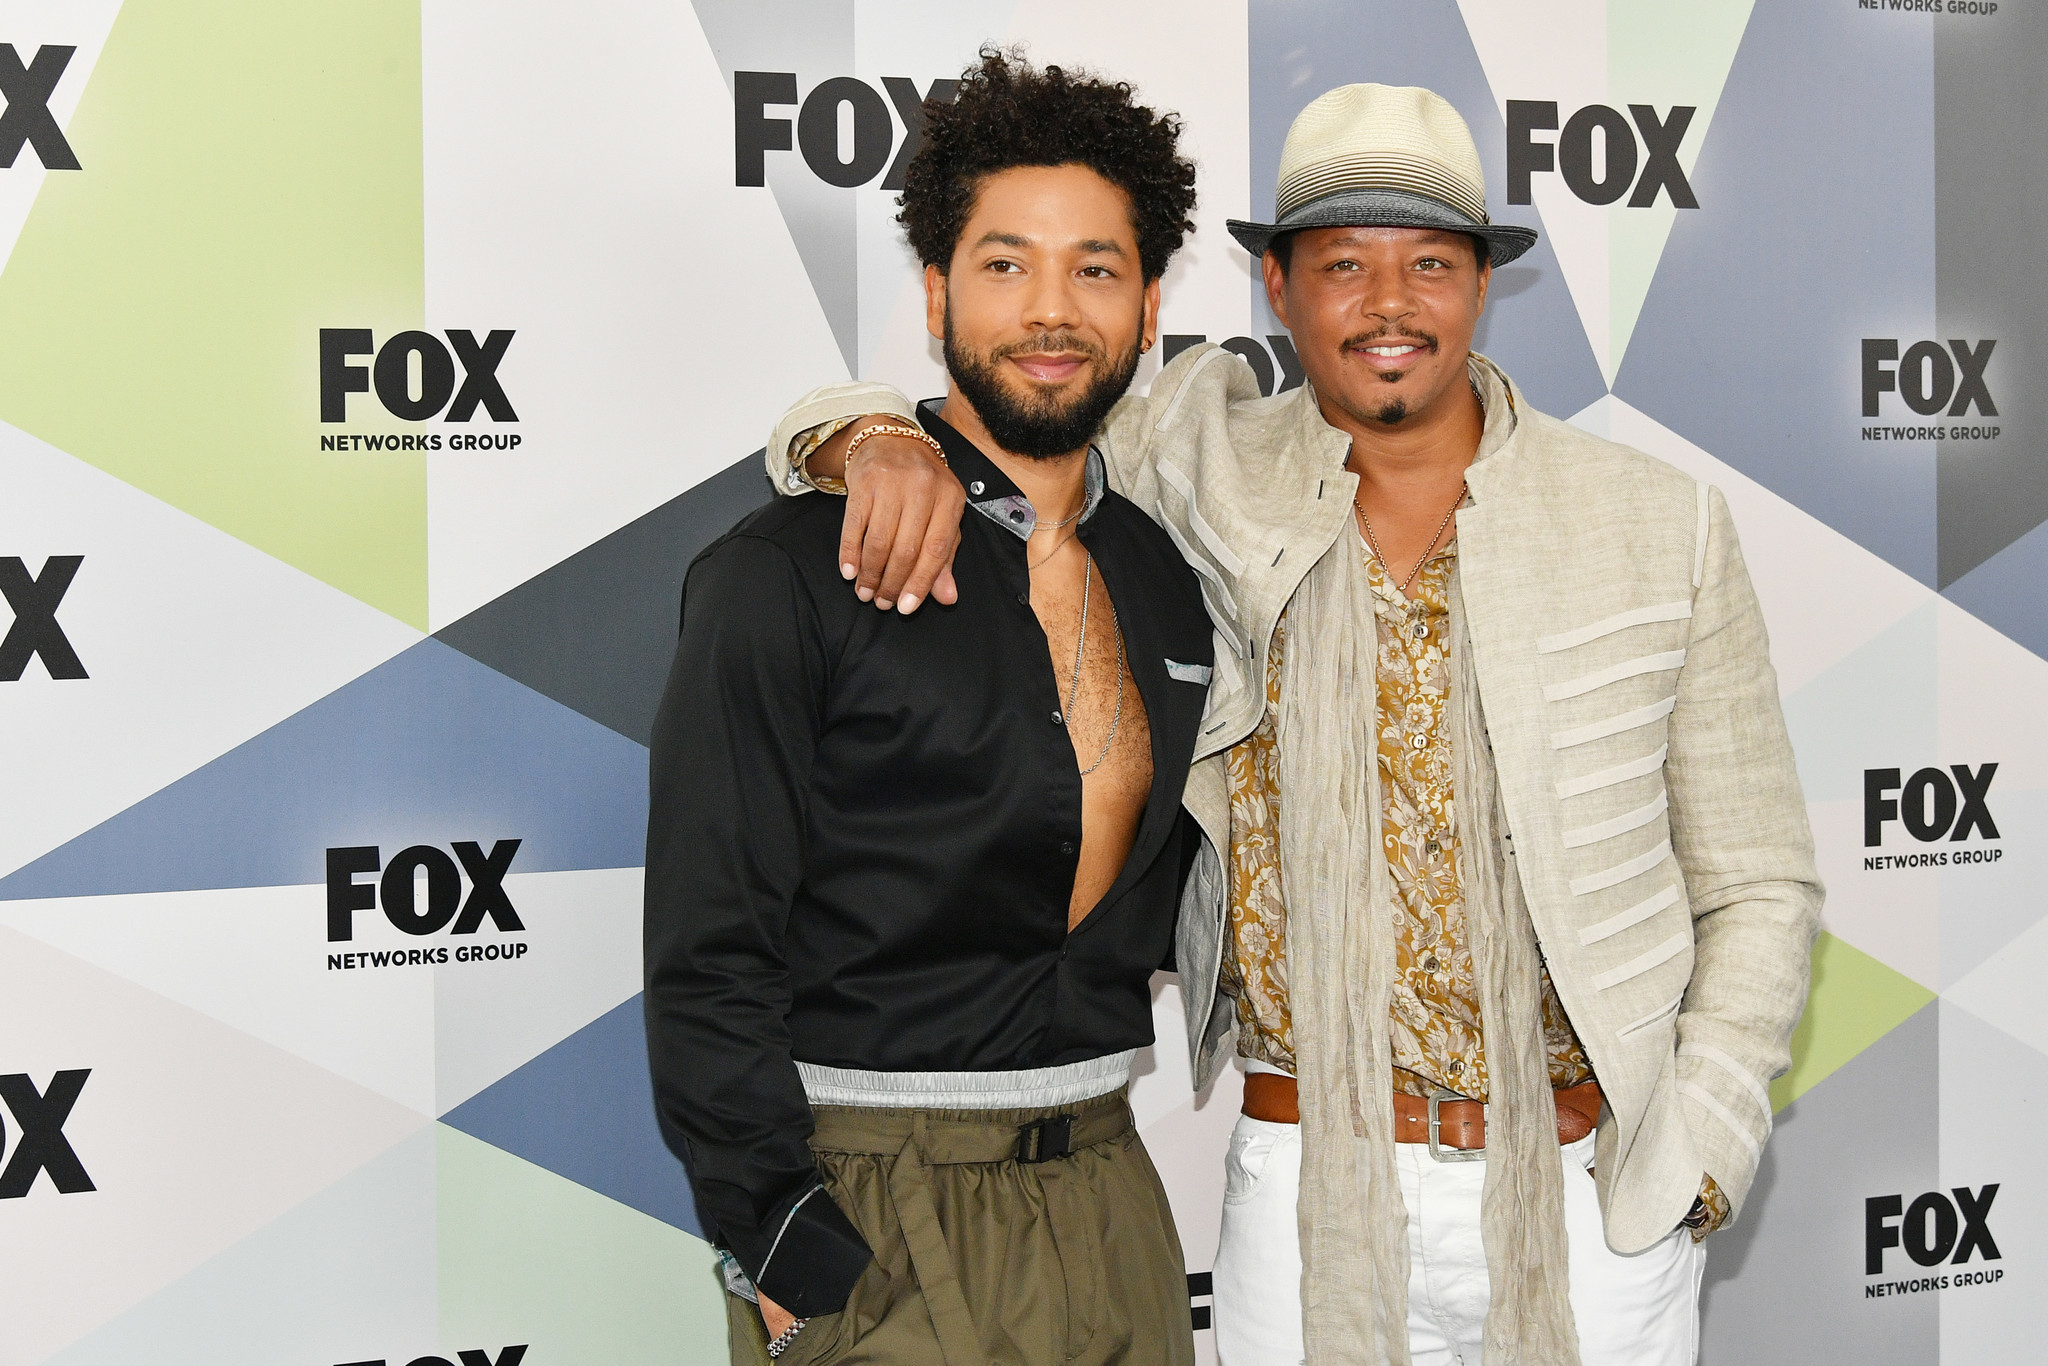 Terrence Howard says 'Empire' isn't the same without Jussie Smollett